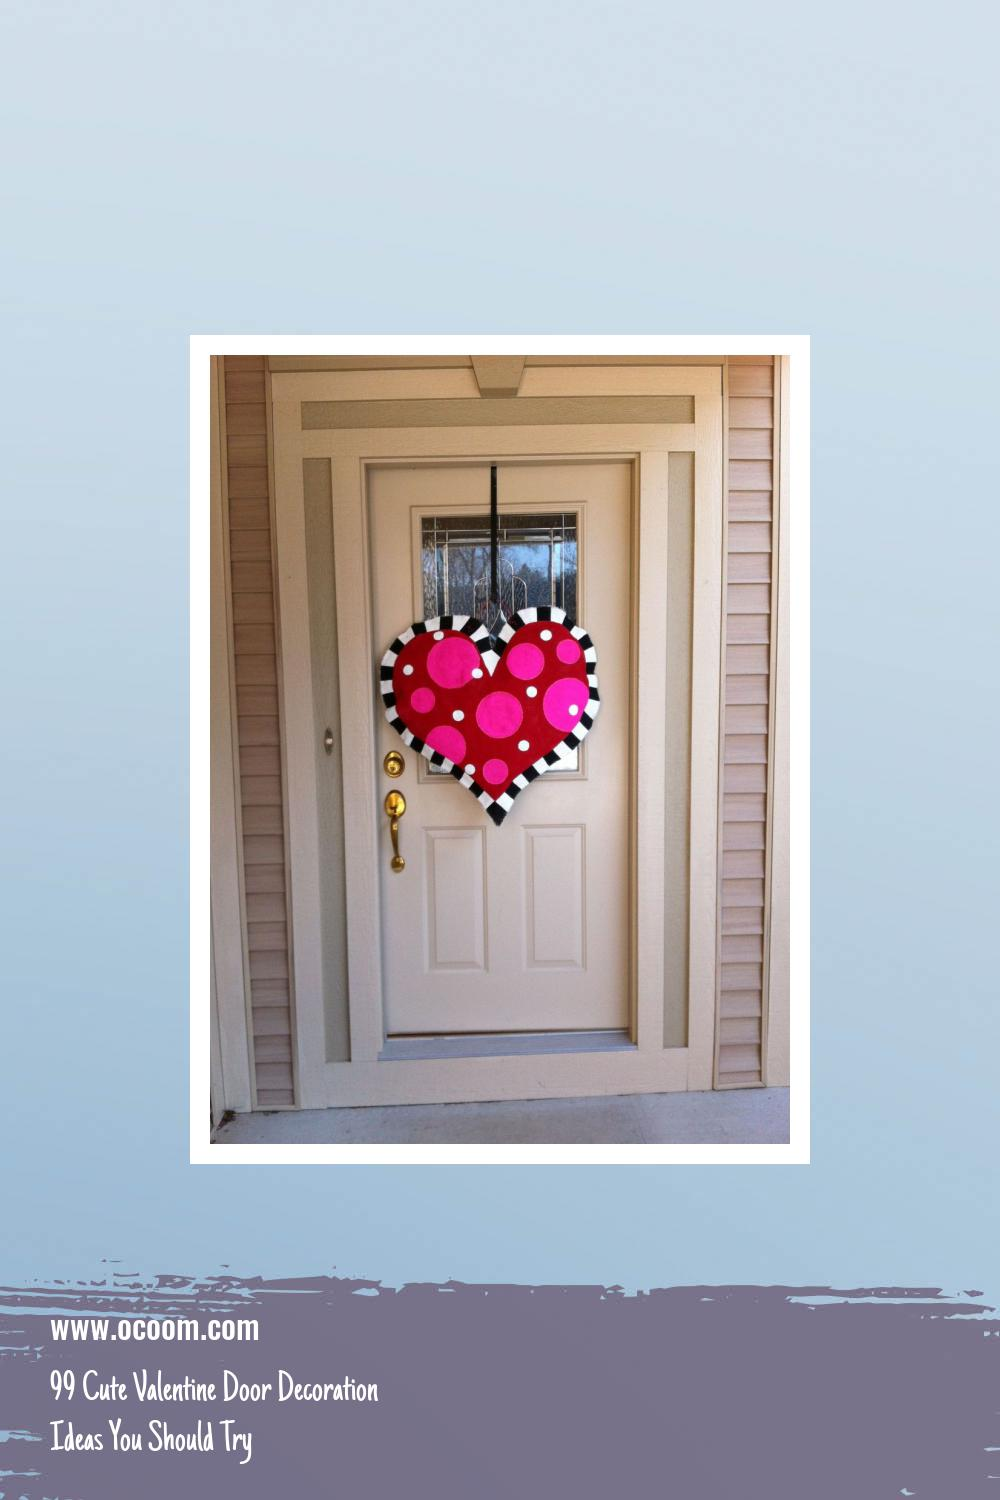 99 Cute Valentine Door Decoration Ideas You Should Try 8